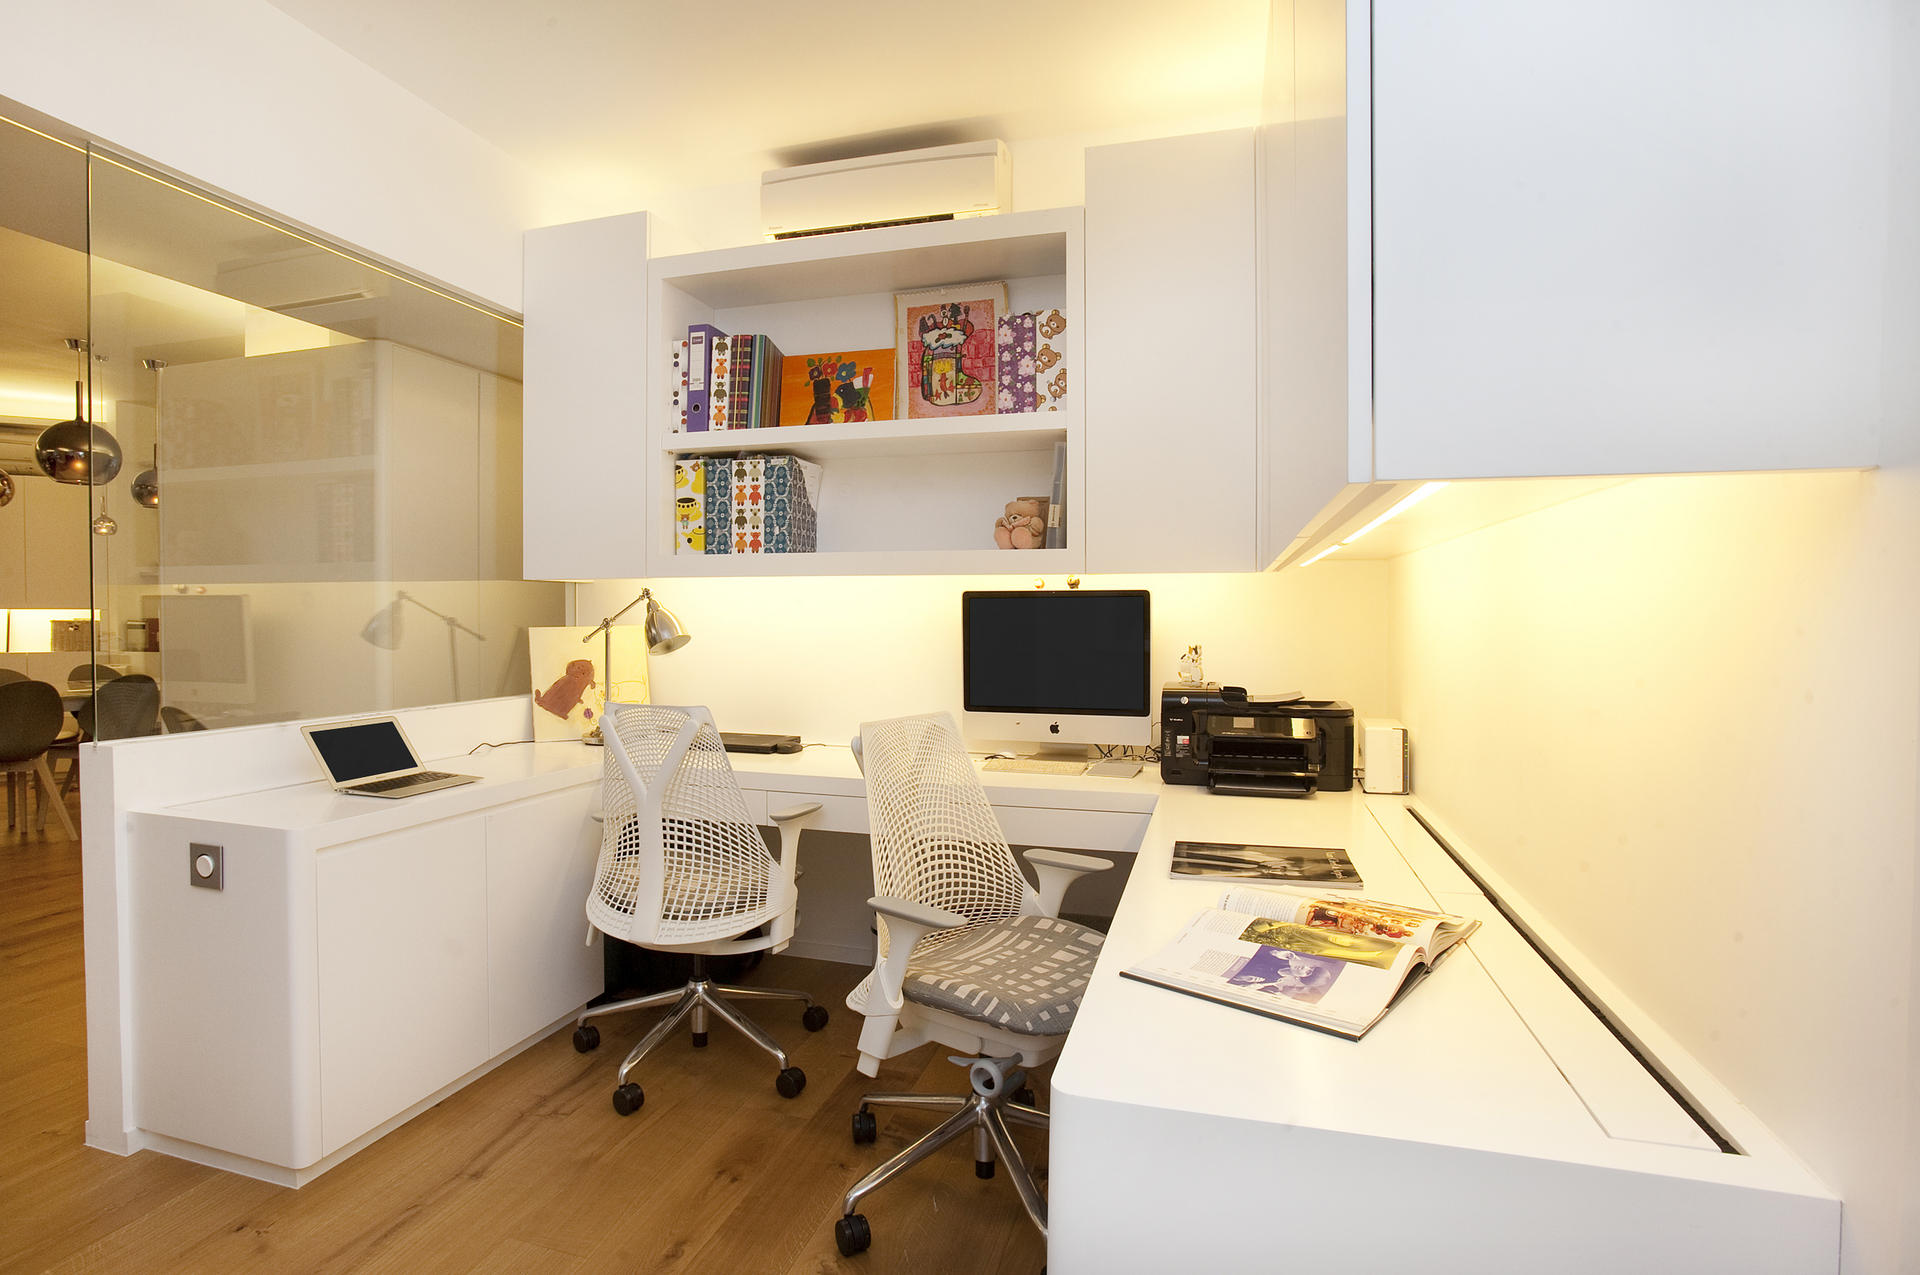 Study The Built In Desk HK32800 Cupboards And Shelves HK35600 Glass Wall Door HK27900 Were Designed Made By Clifton Leung Design